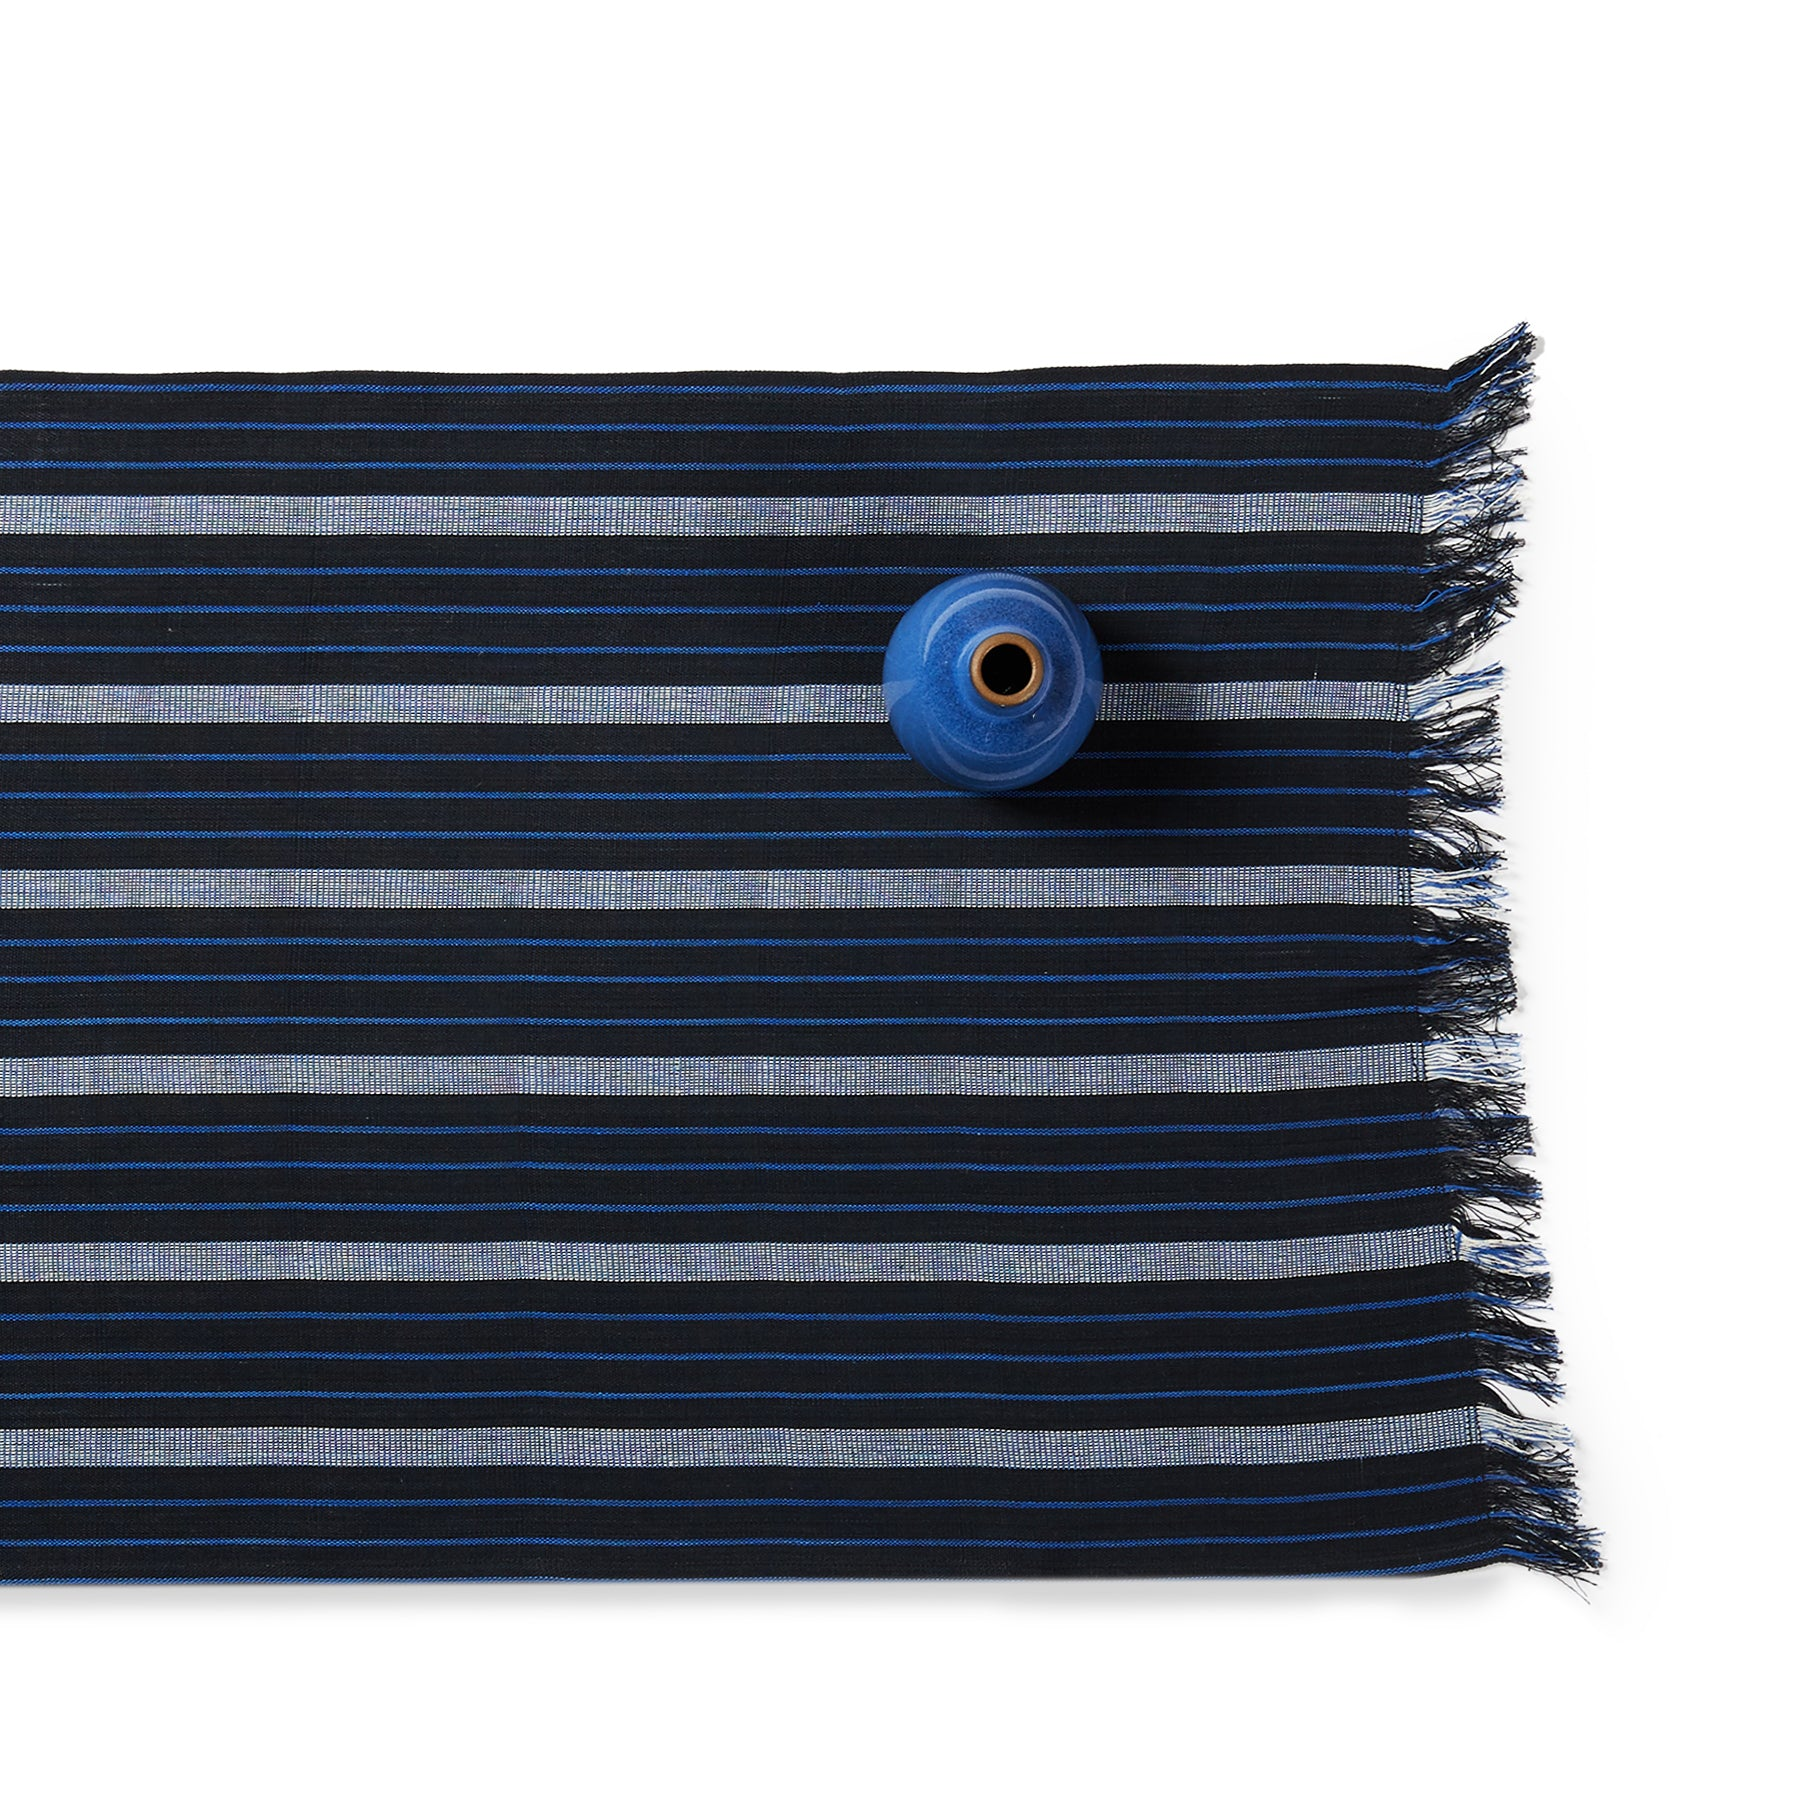 Cotton Striped Runner in Blue/Black Zoom Image 1